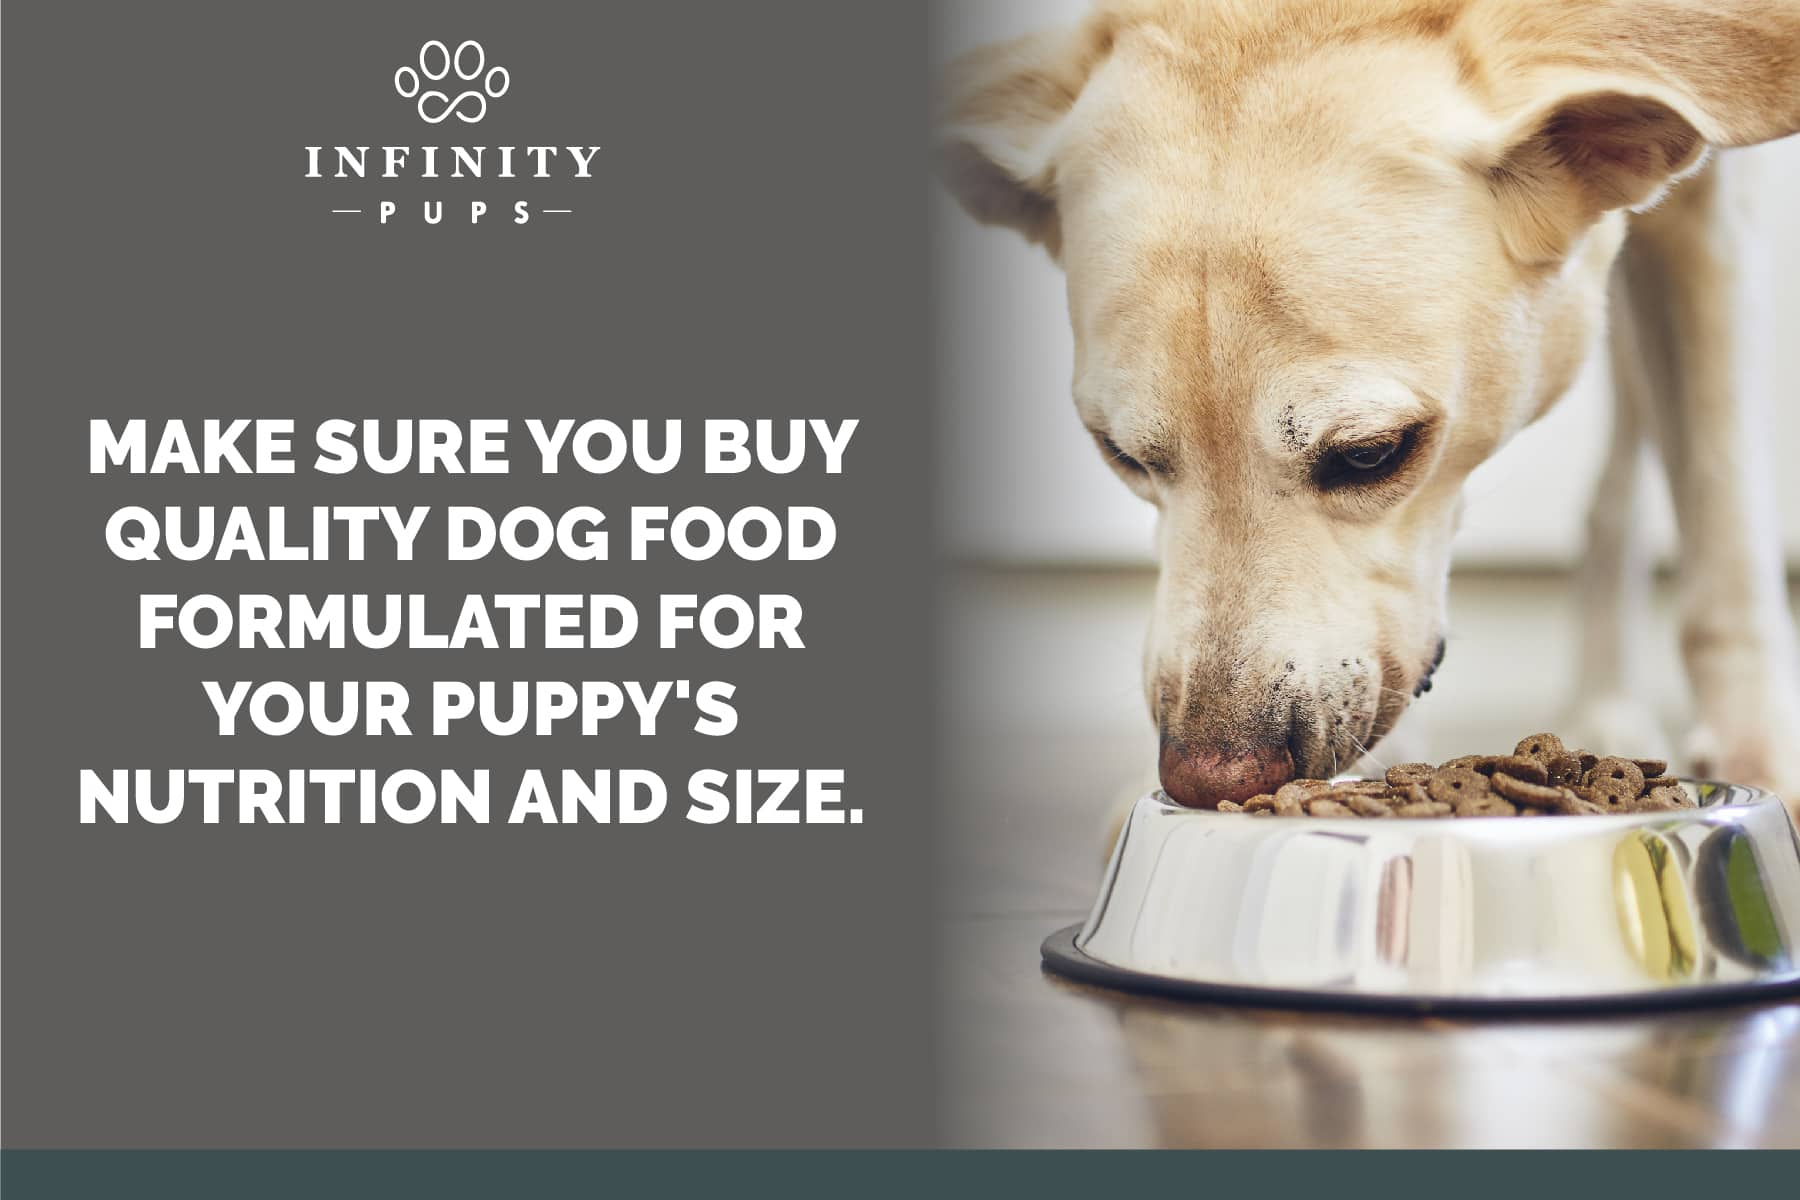 always buy quality dog food for your puppy